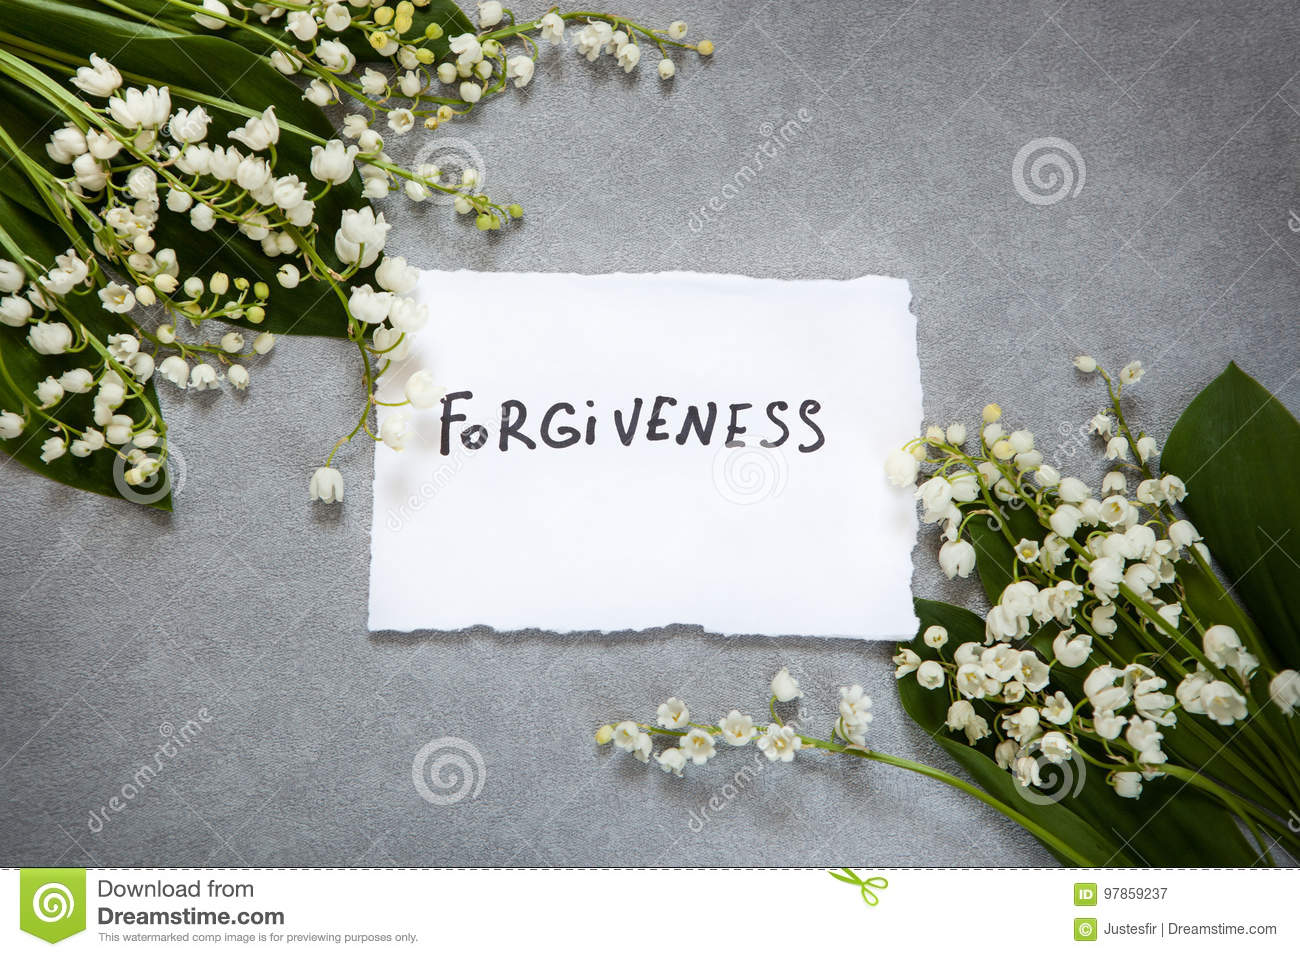 Forgiveness word with white flowers